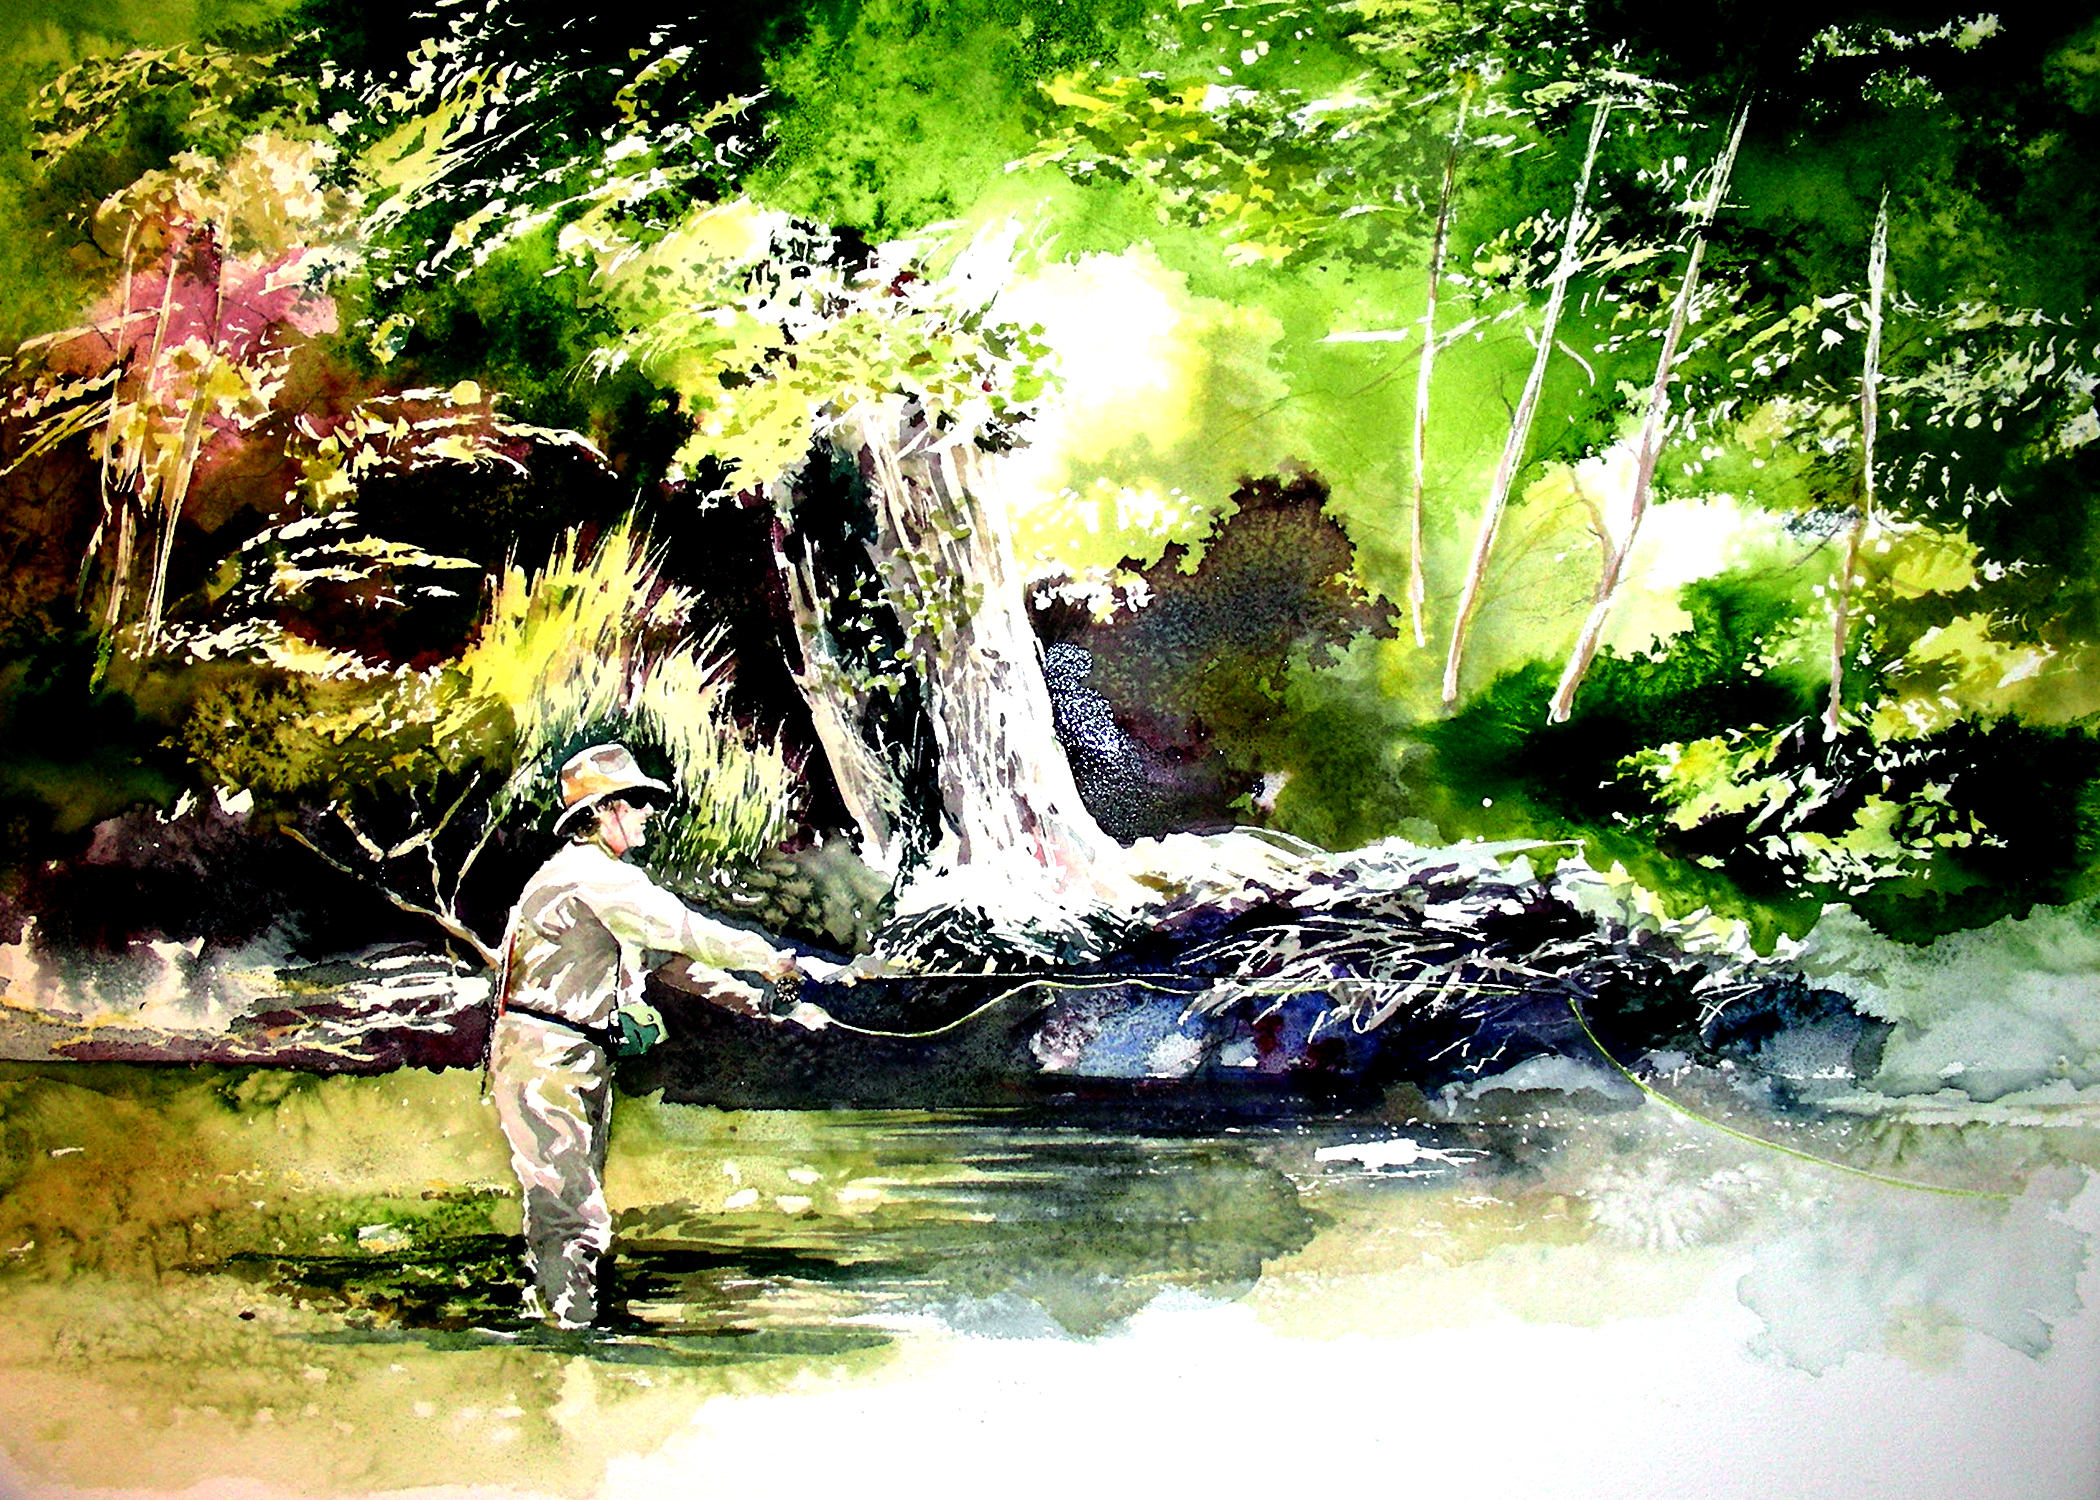 Fly fishing fly drawings - photo#42